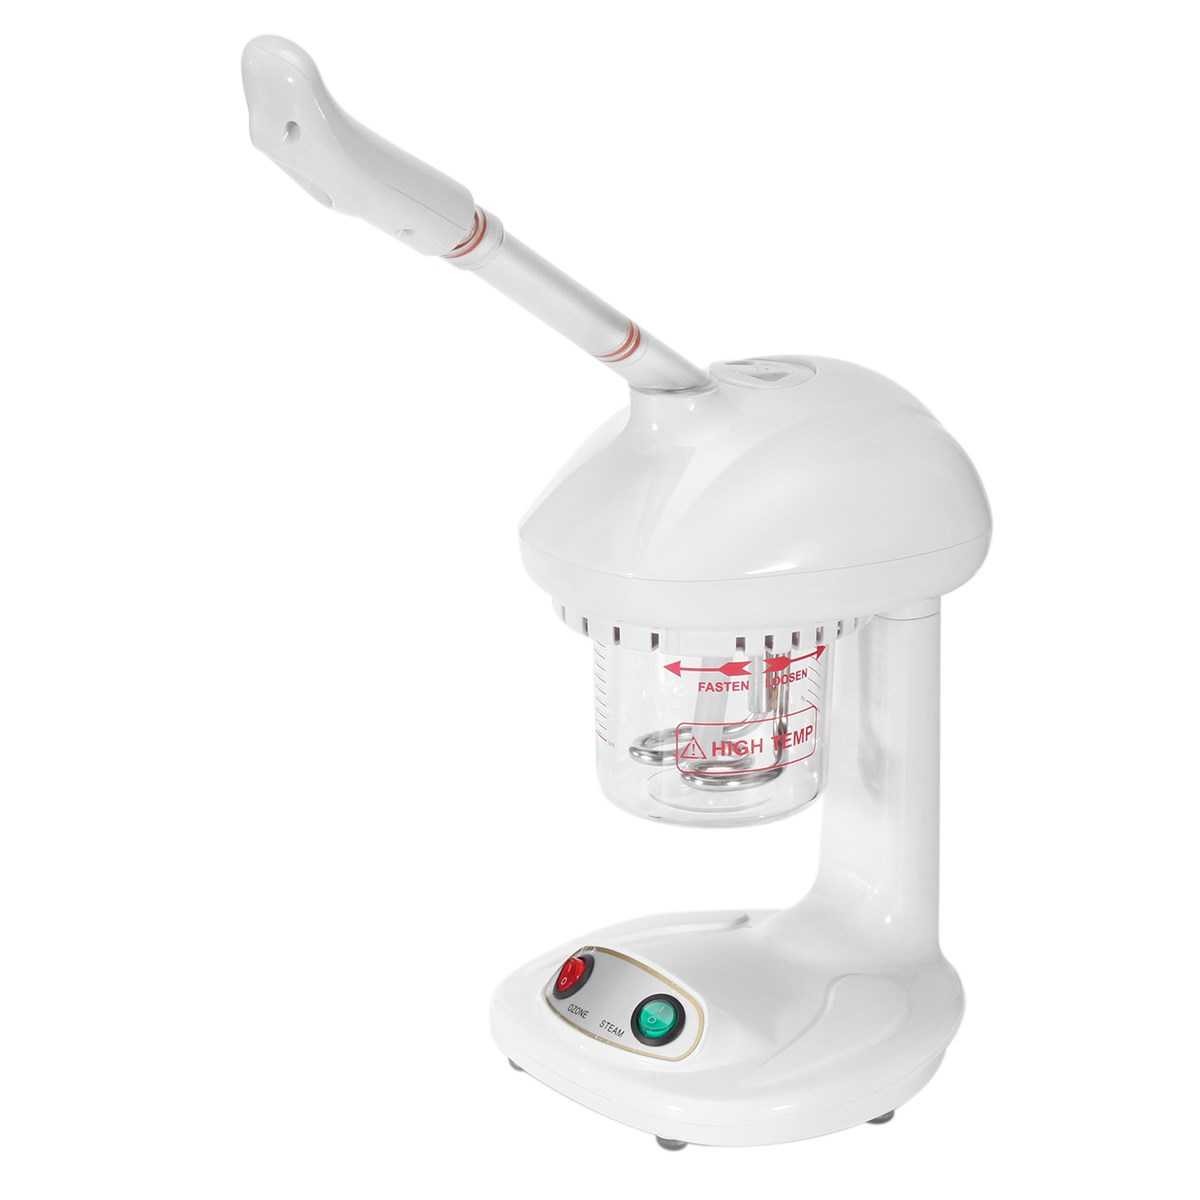 Professional Ion Vapour Facial Steamer Ozone Face Sprayer